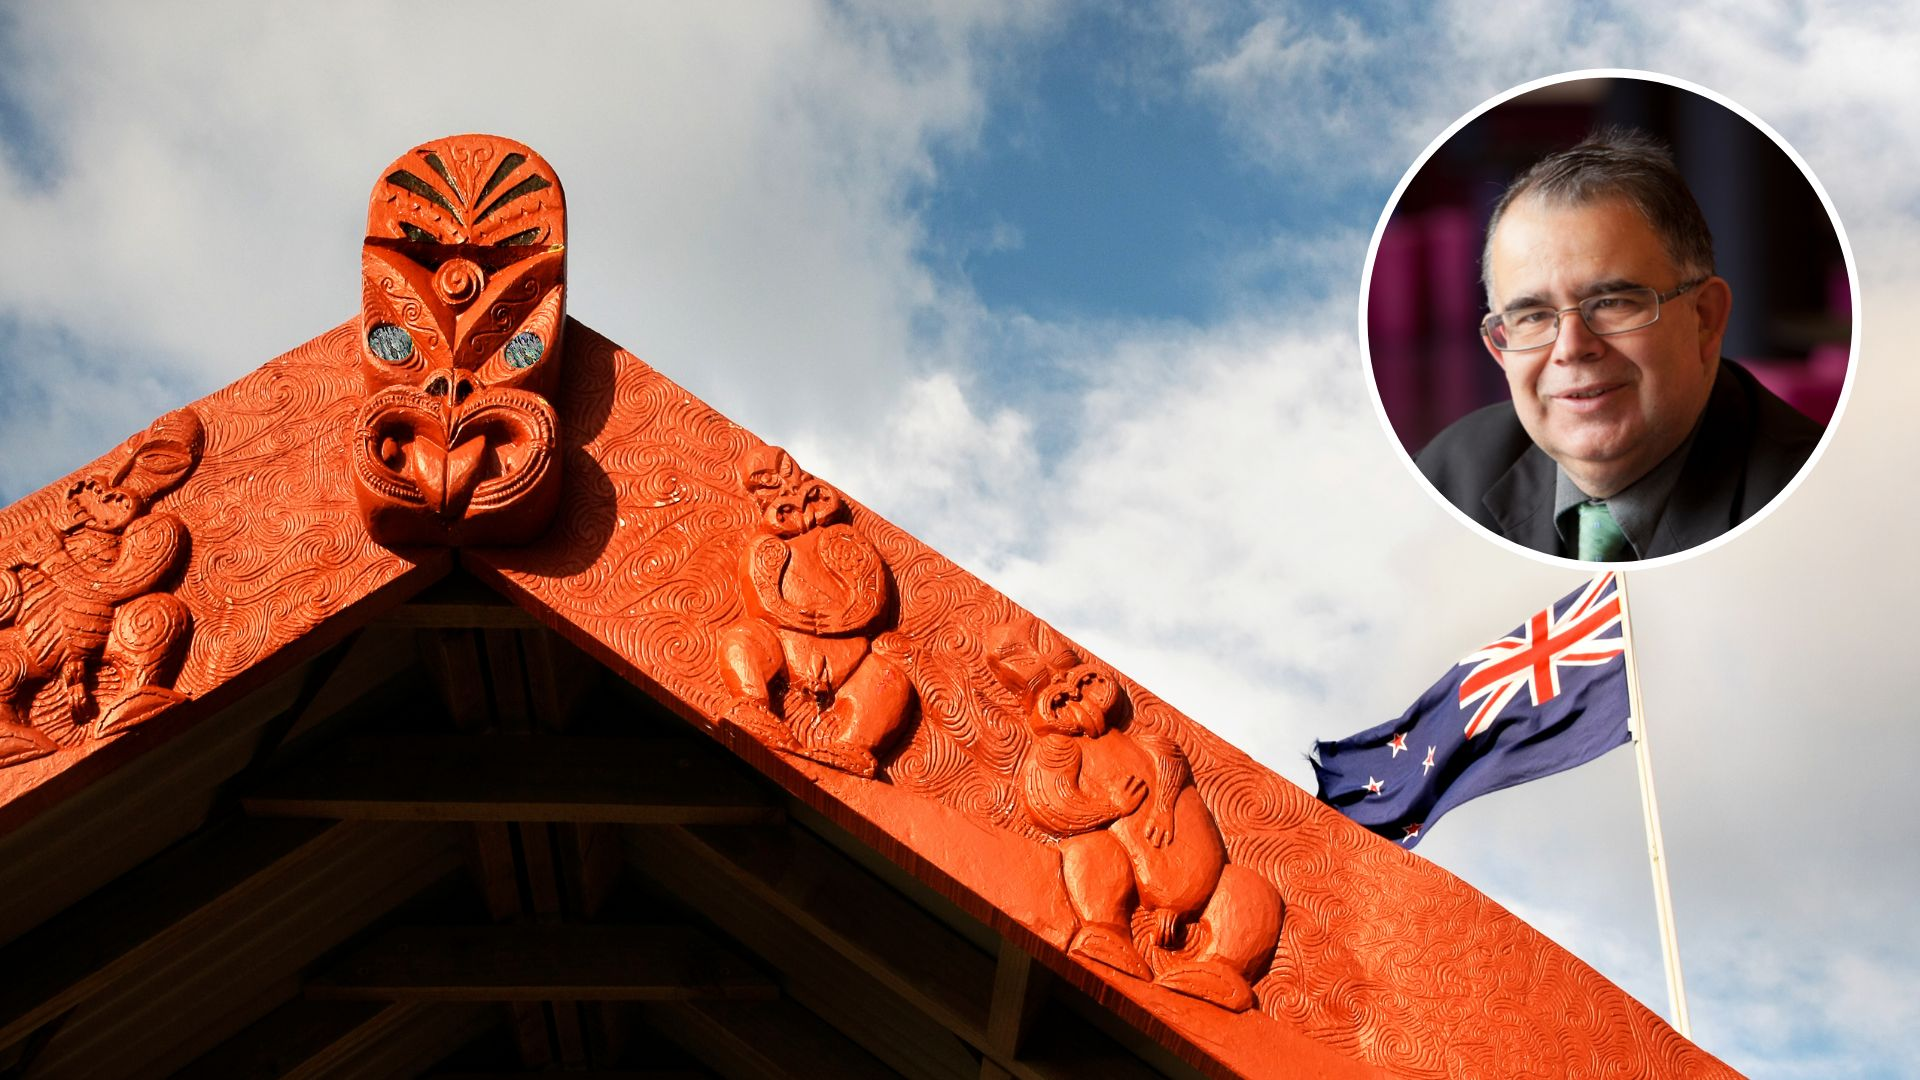 New Zealand's He Puapua report and its significance for Māori